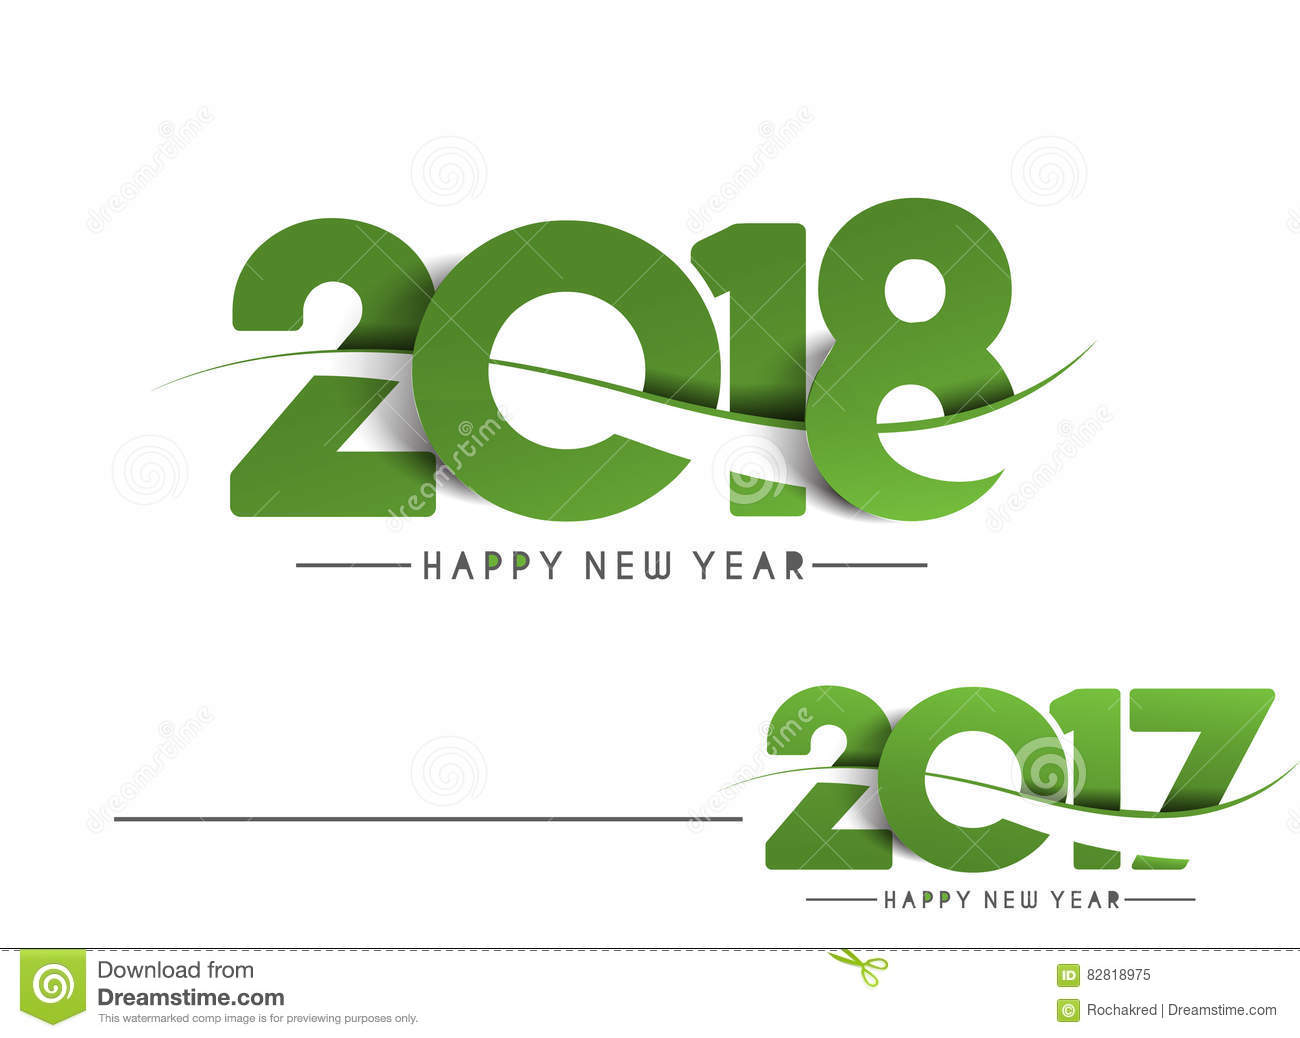 Happy New Year 2018   2017 Text Design. Royalty Free Vector